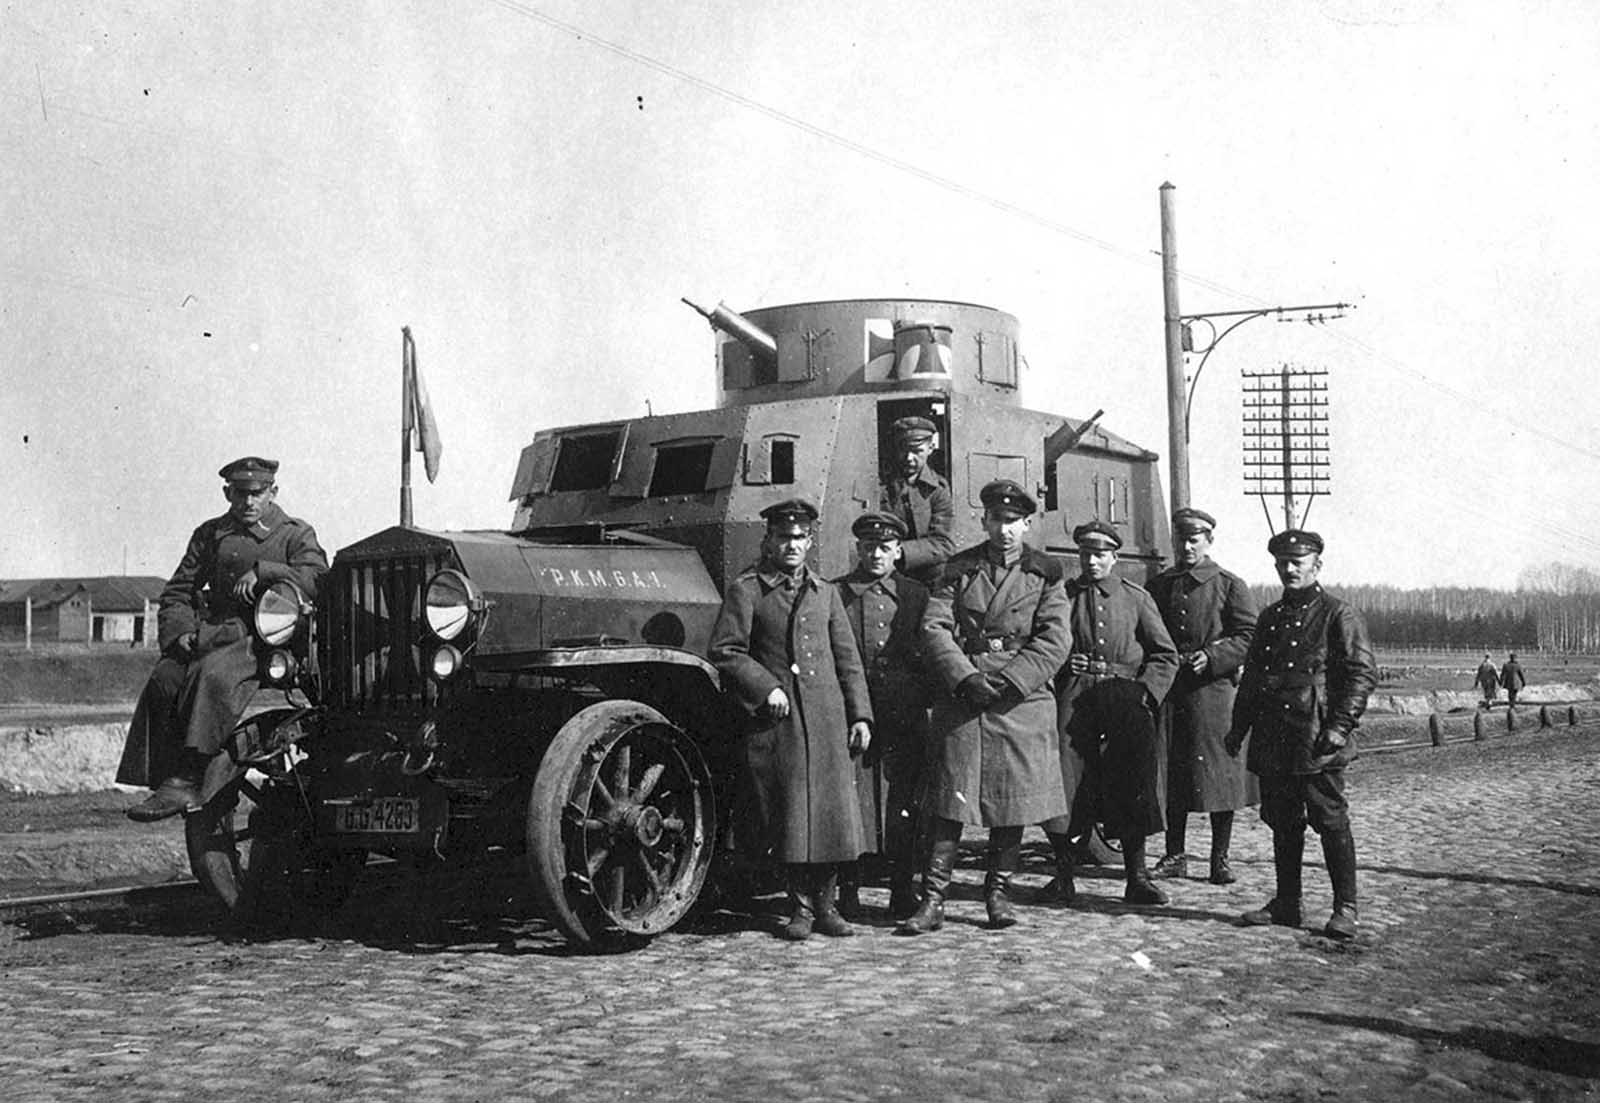 German officers with an armored car, Ukraine, Spring of 1918.